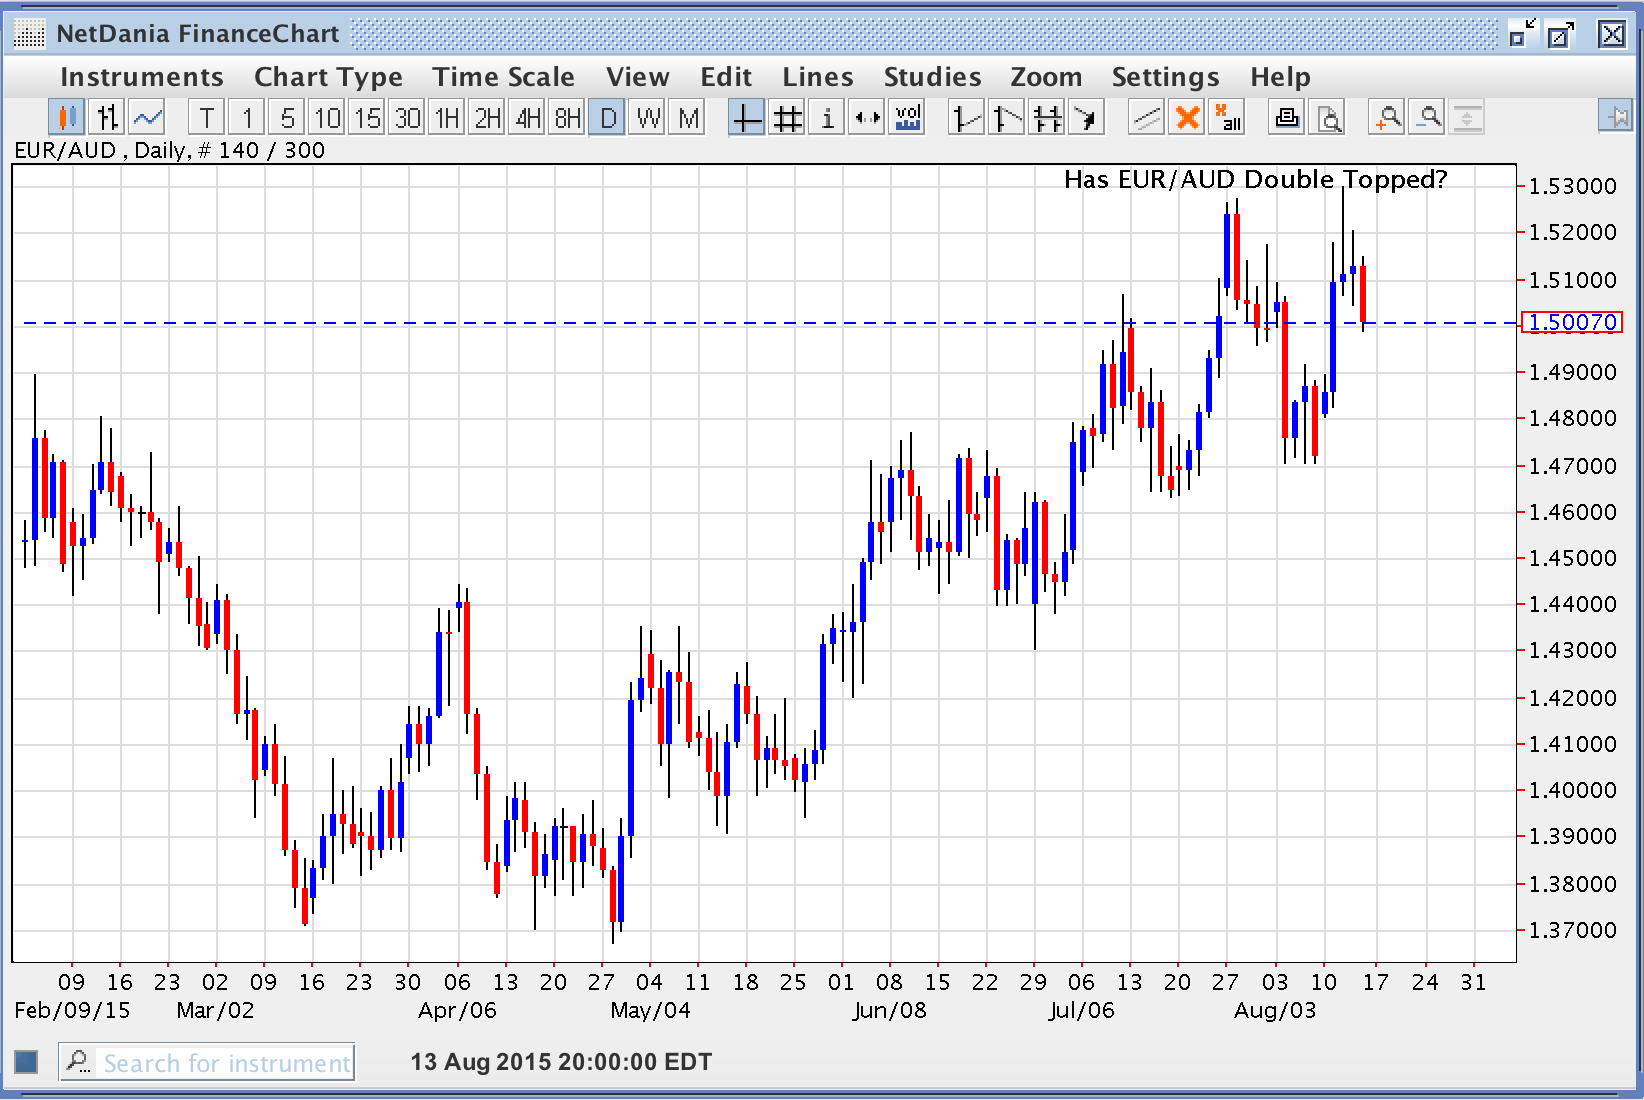 Has EUR/AUD Double Topped?